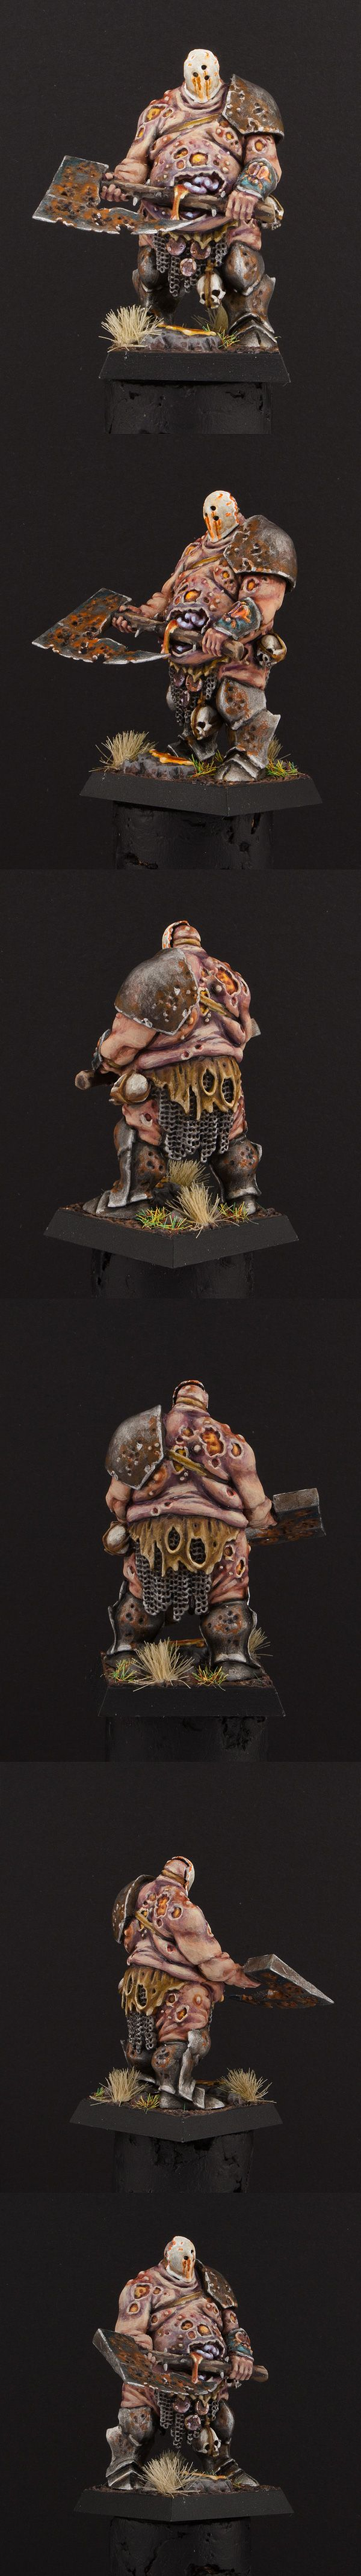 Many people have done a good job with this model, I like what he did with the head.